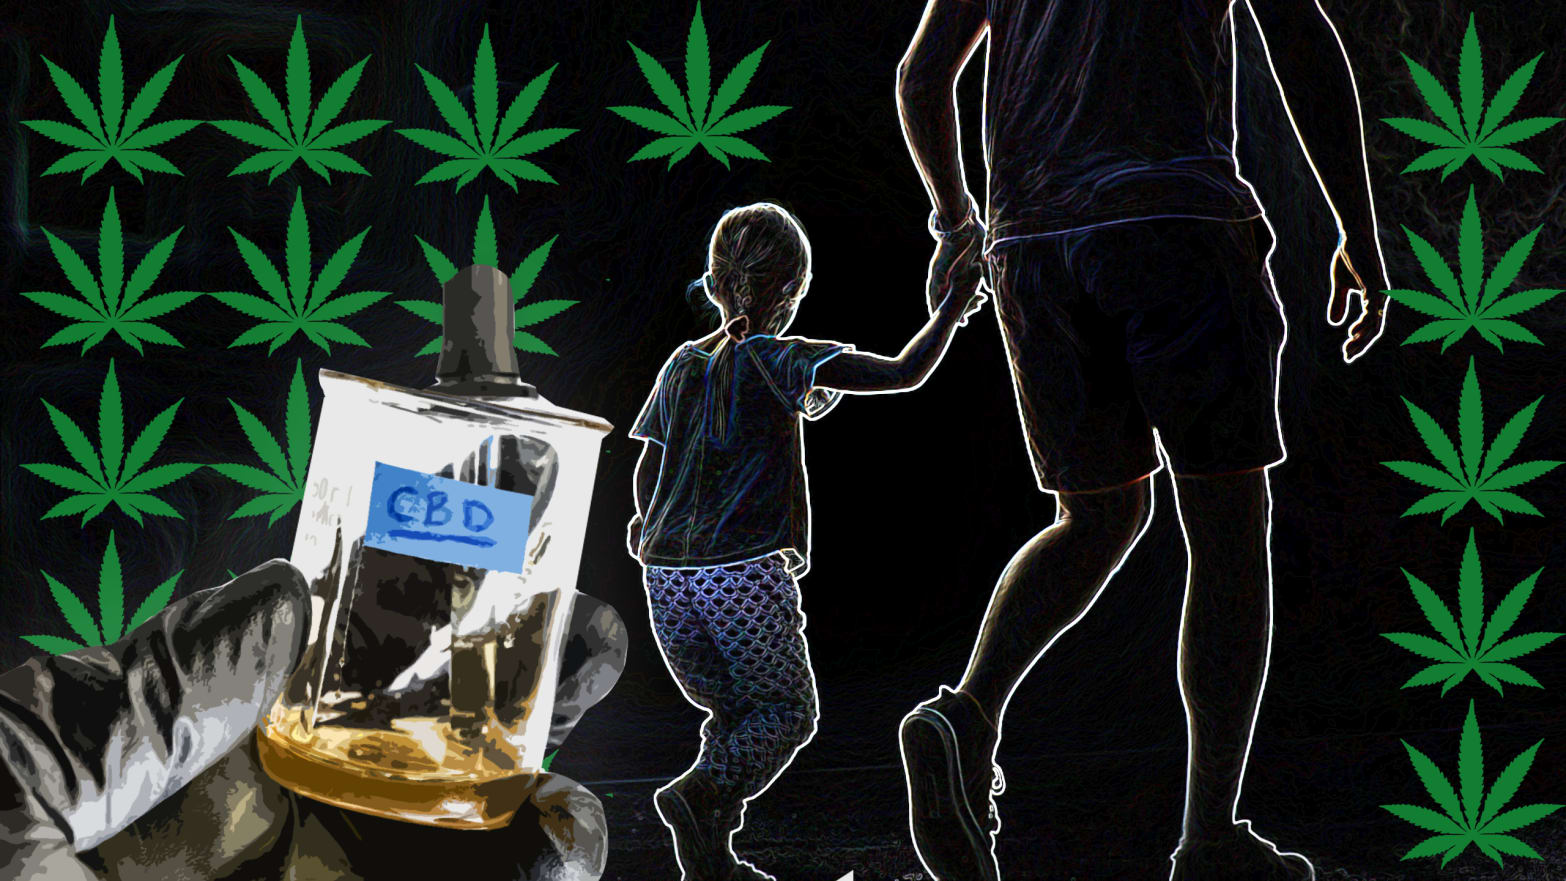 silhouette image of an adult leading a child by the hand background marijuana leaves forefront closeup of gloved hand holding cbd oil